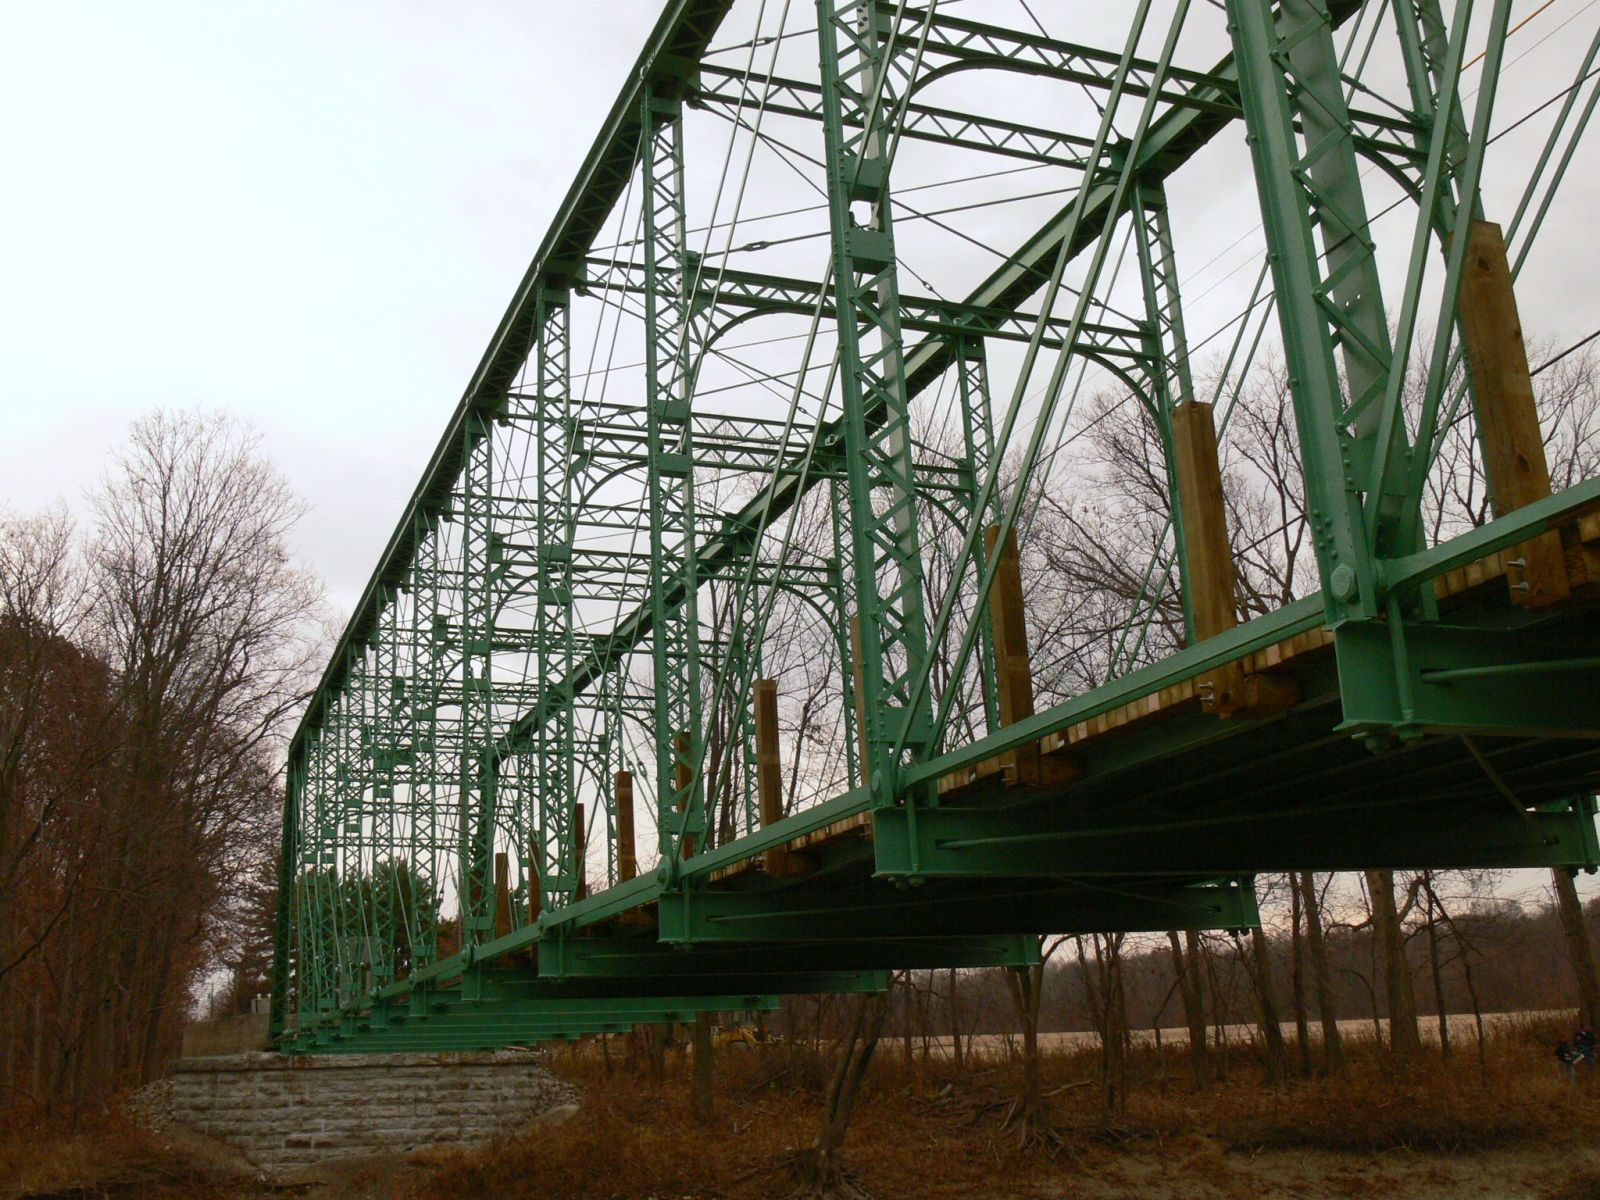 Looking up at the North truss